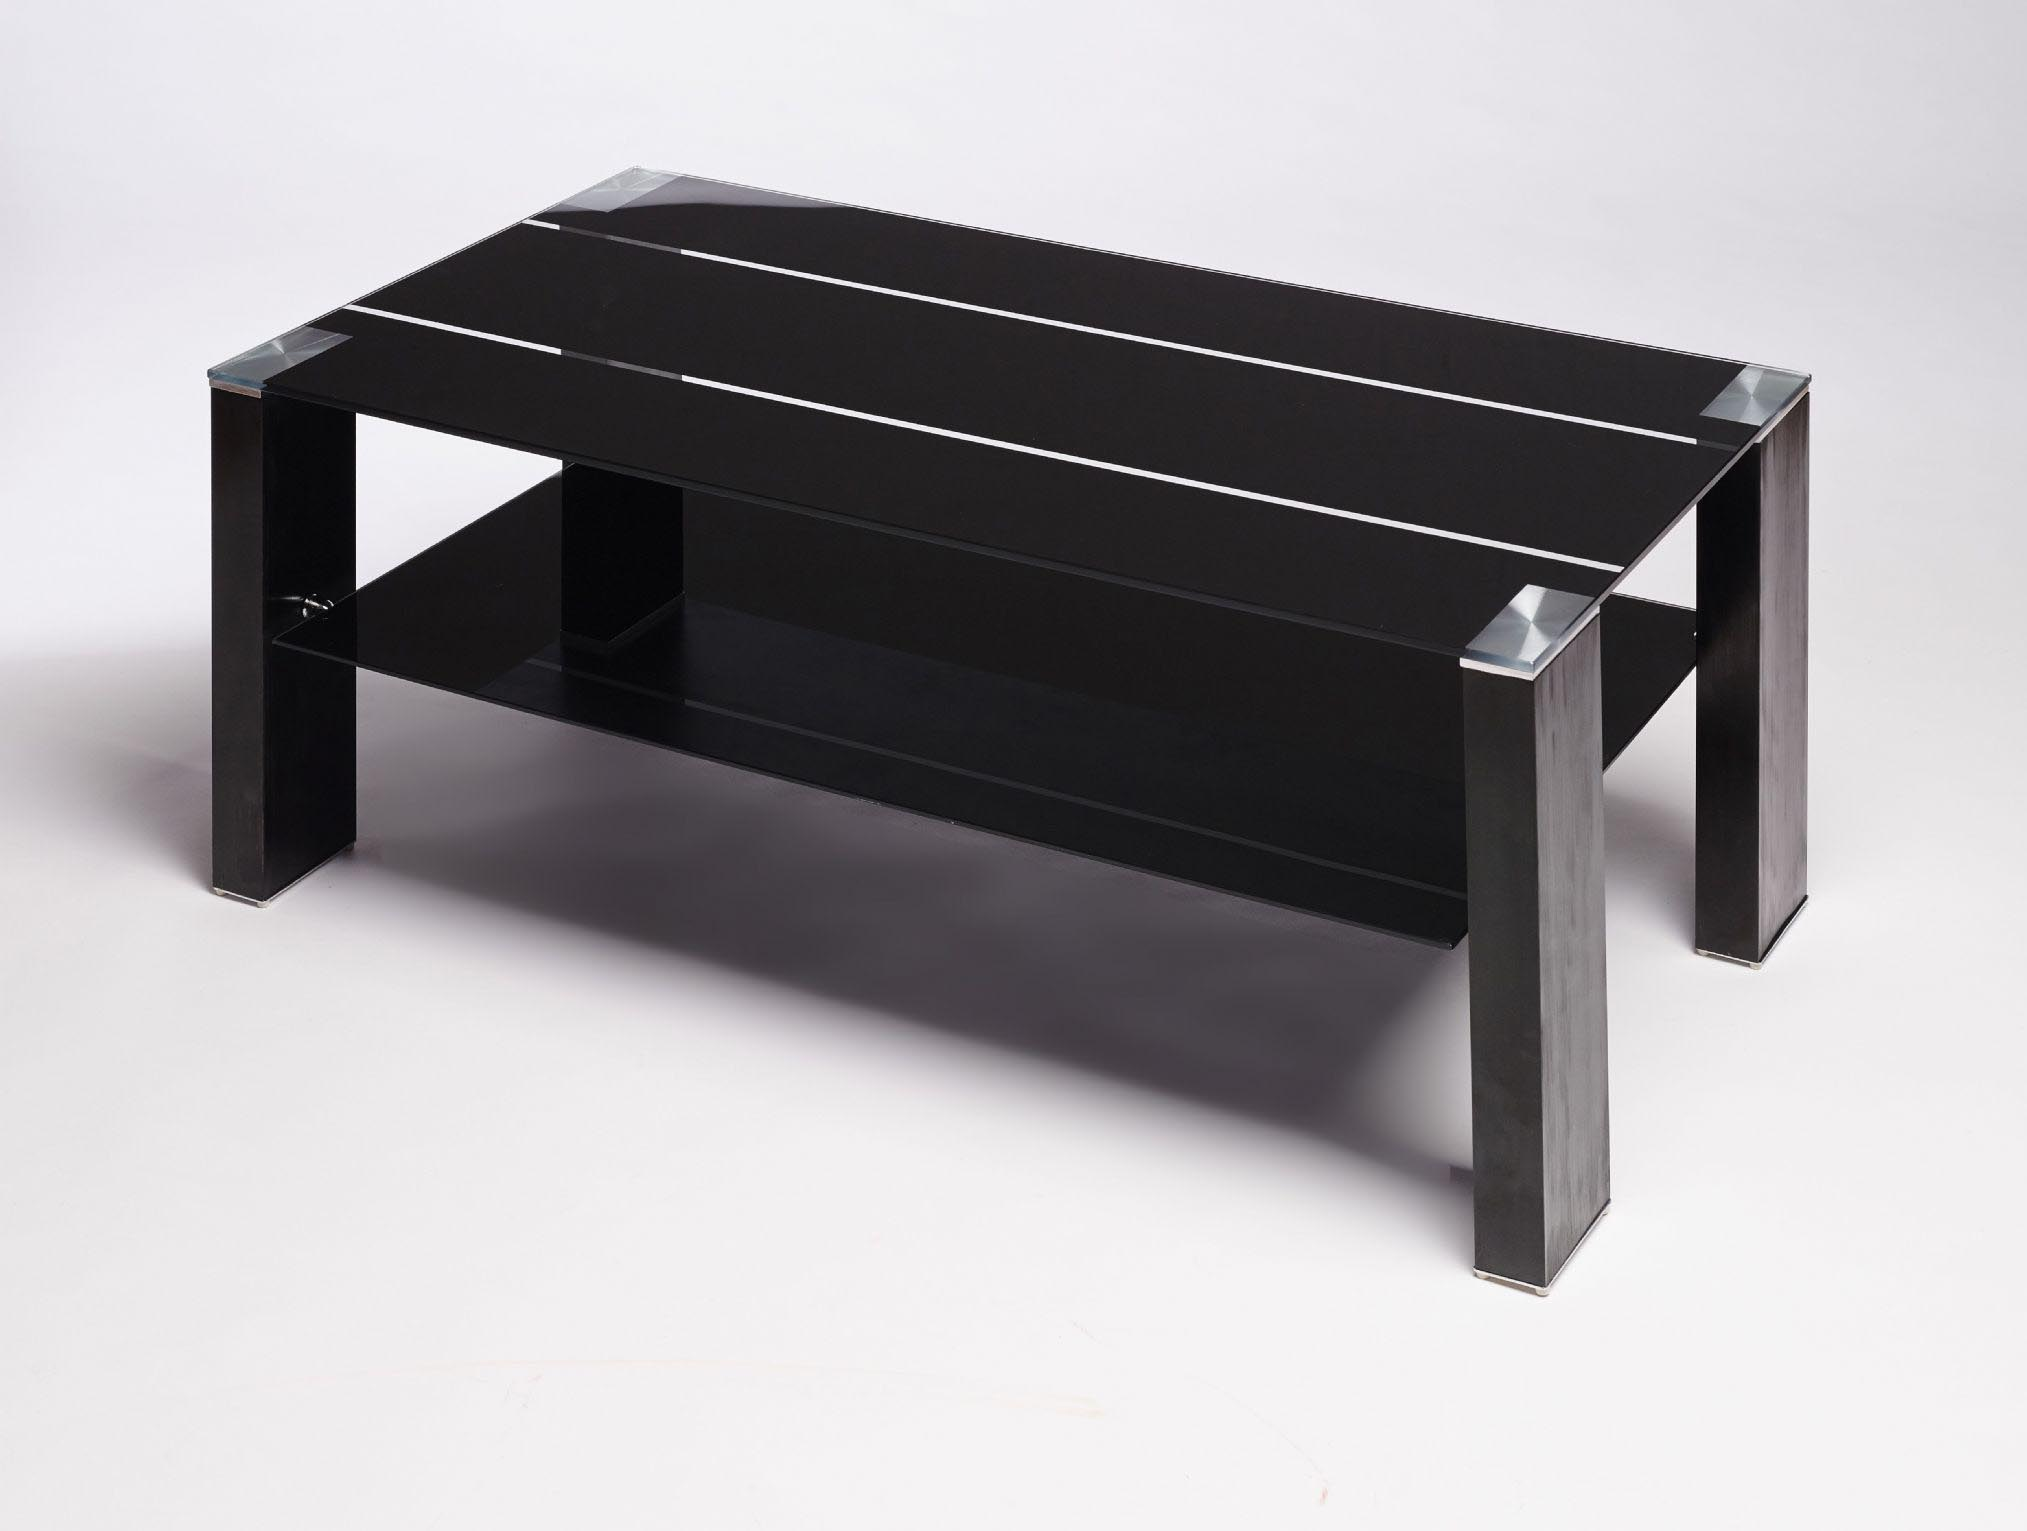 Black Glass Coffee Table Contemporary Modern Retro Coffee Table Design Ideas